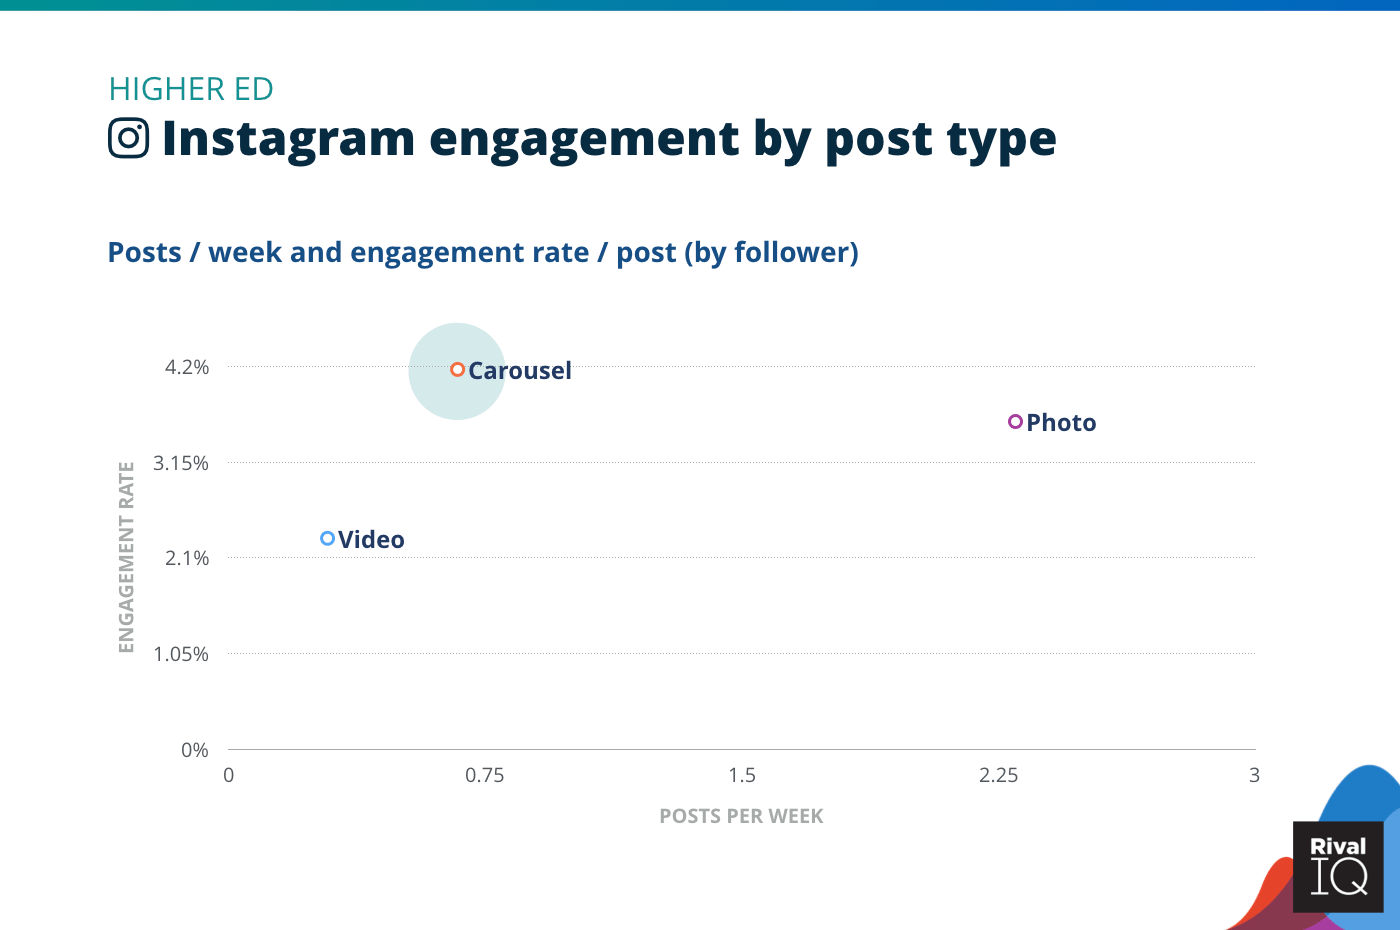 Chart of Instagram posts per week and engagement rate by post type, Higher Ed